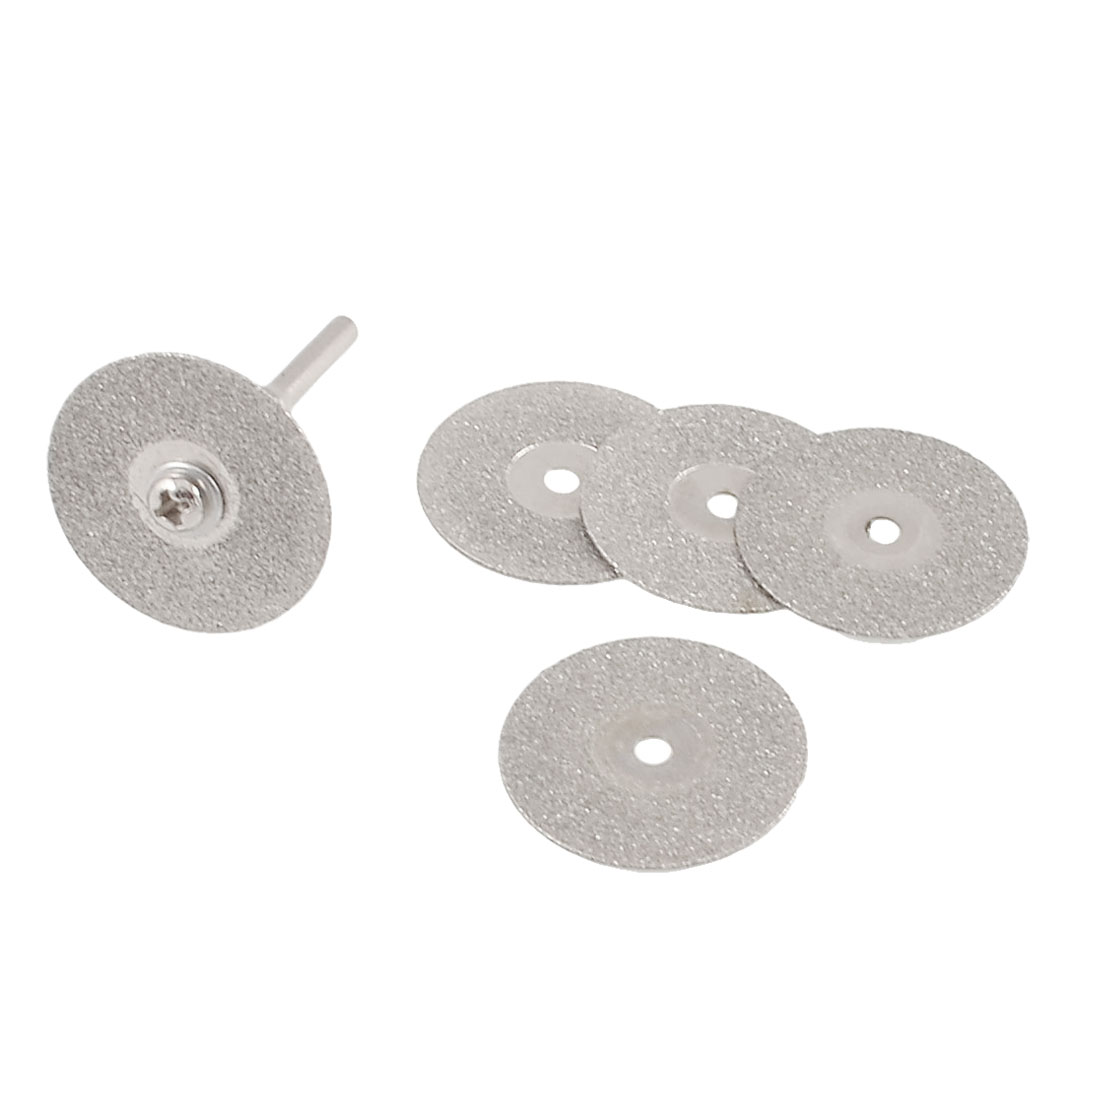 25mm Dia Mini Electric Grinder Abrasive Cut off Wheel 6 Pcs w Connector